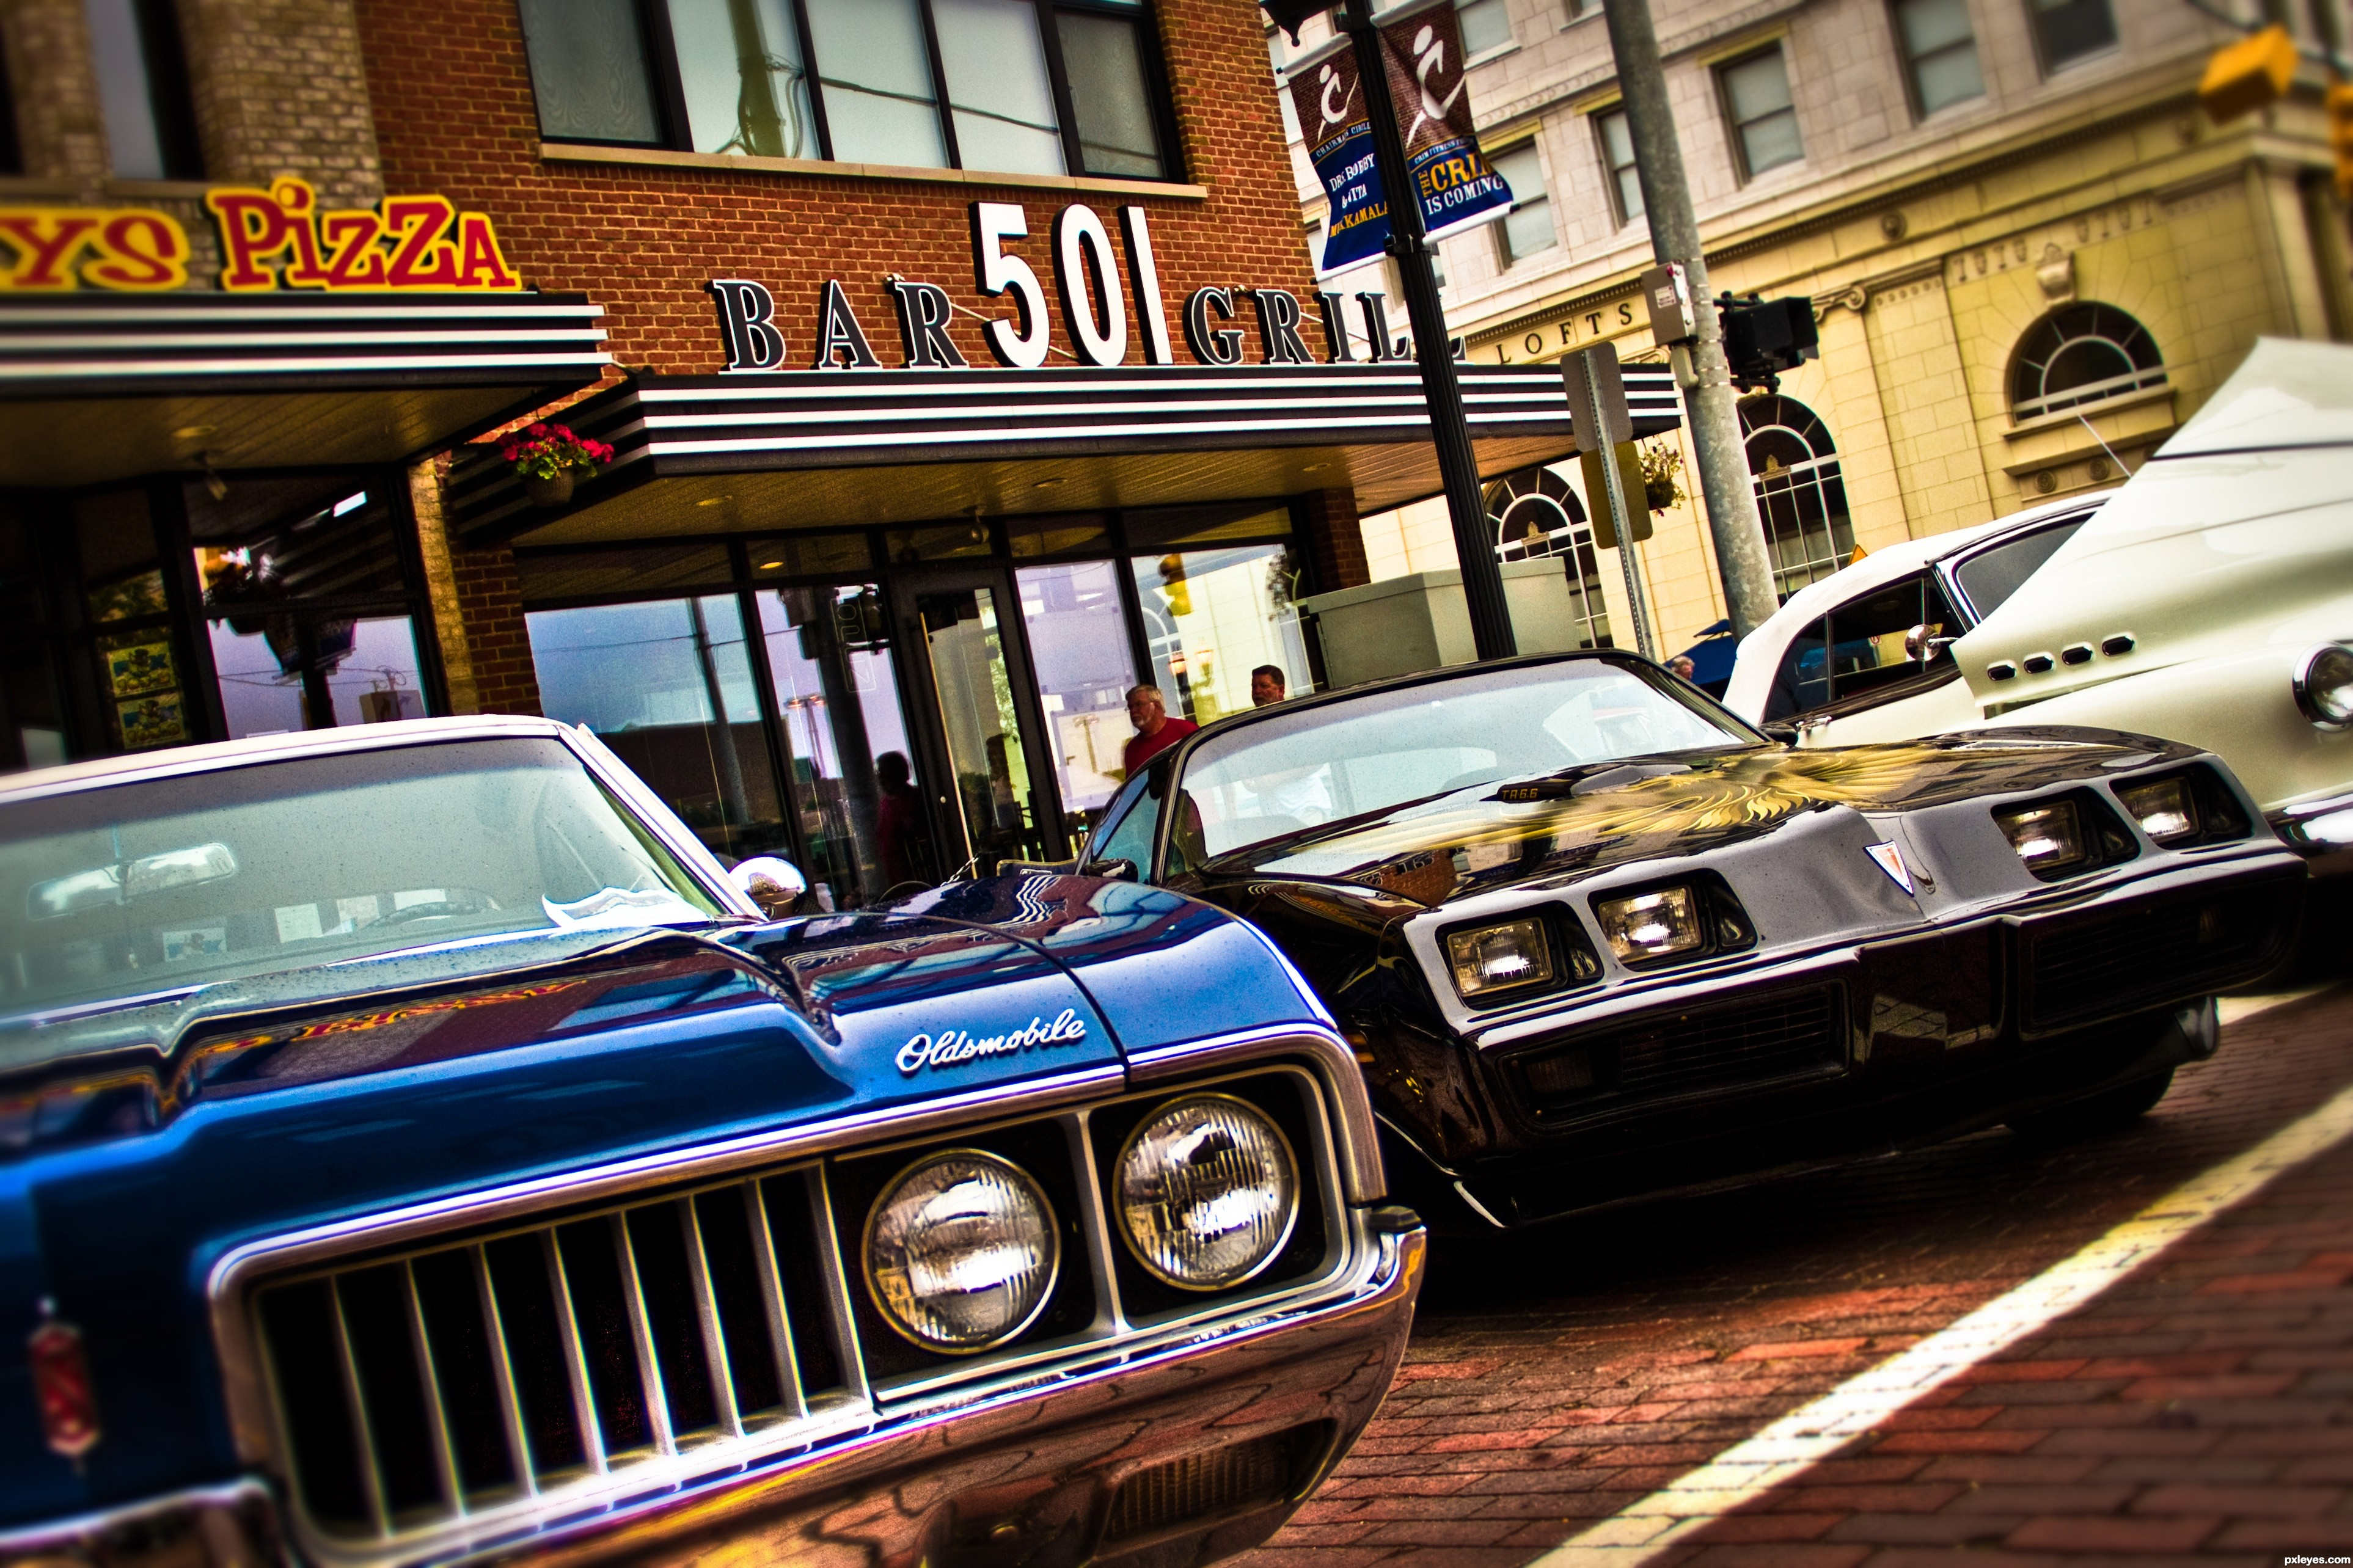 Old Classics picture, by locksmagic for: HDR only photography ...